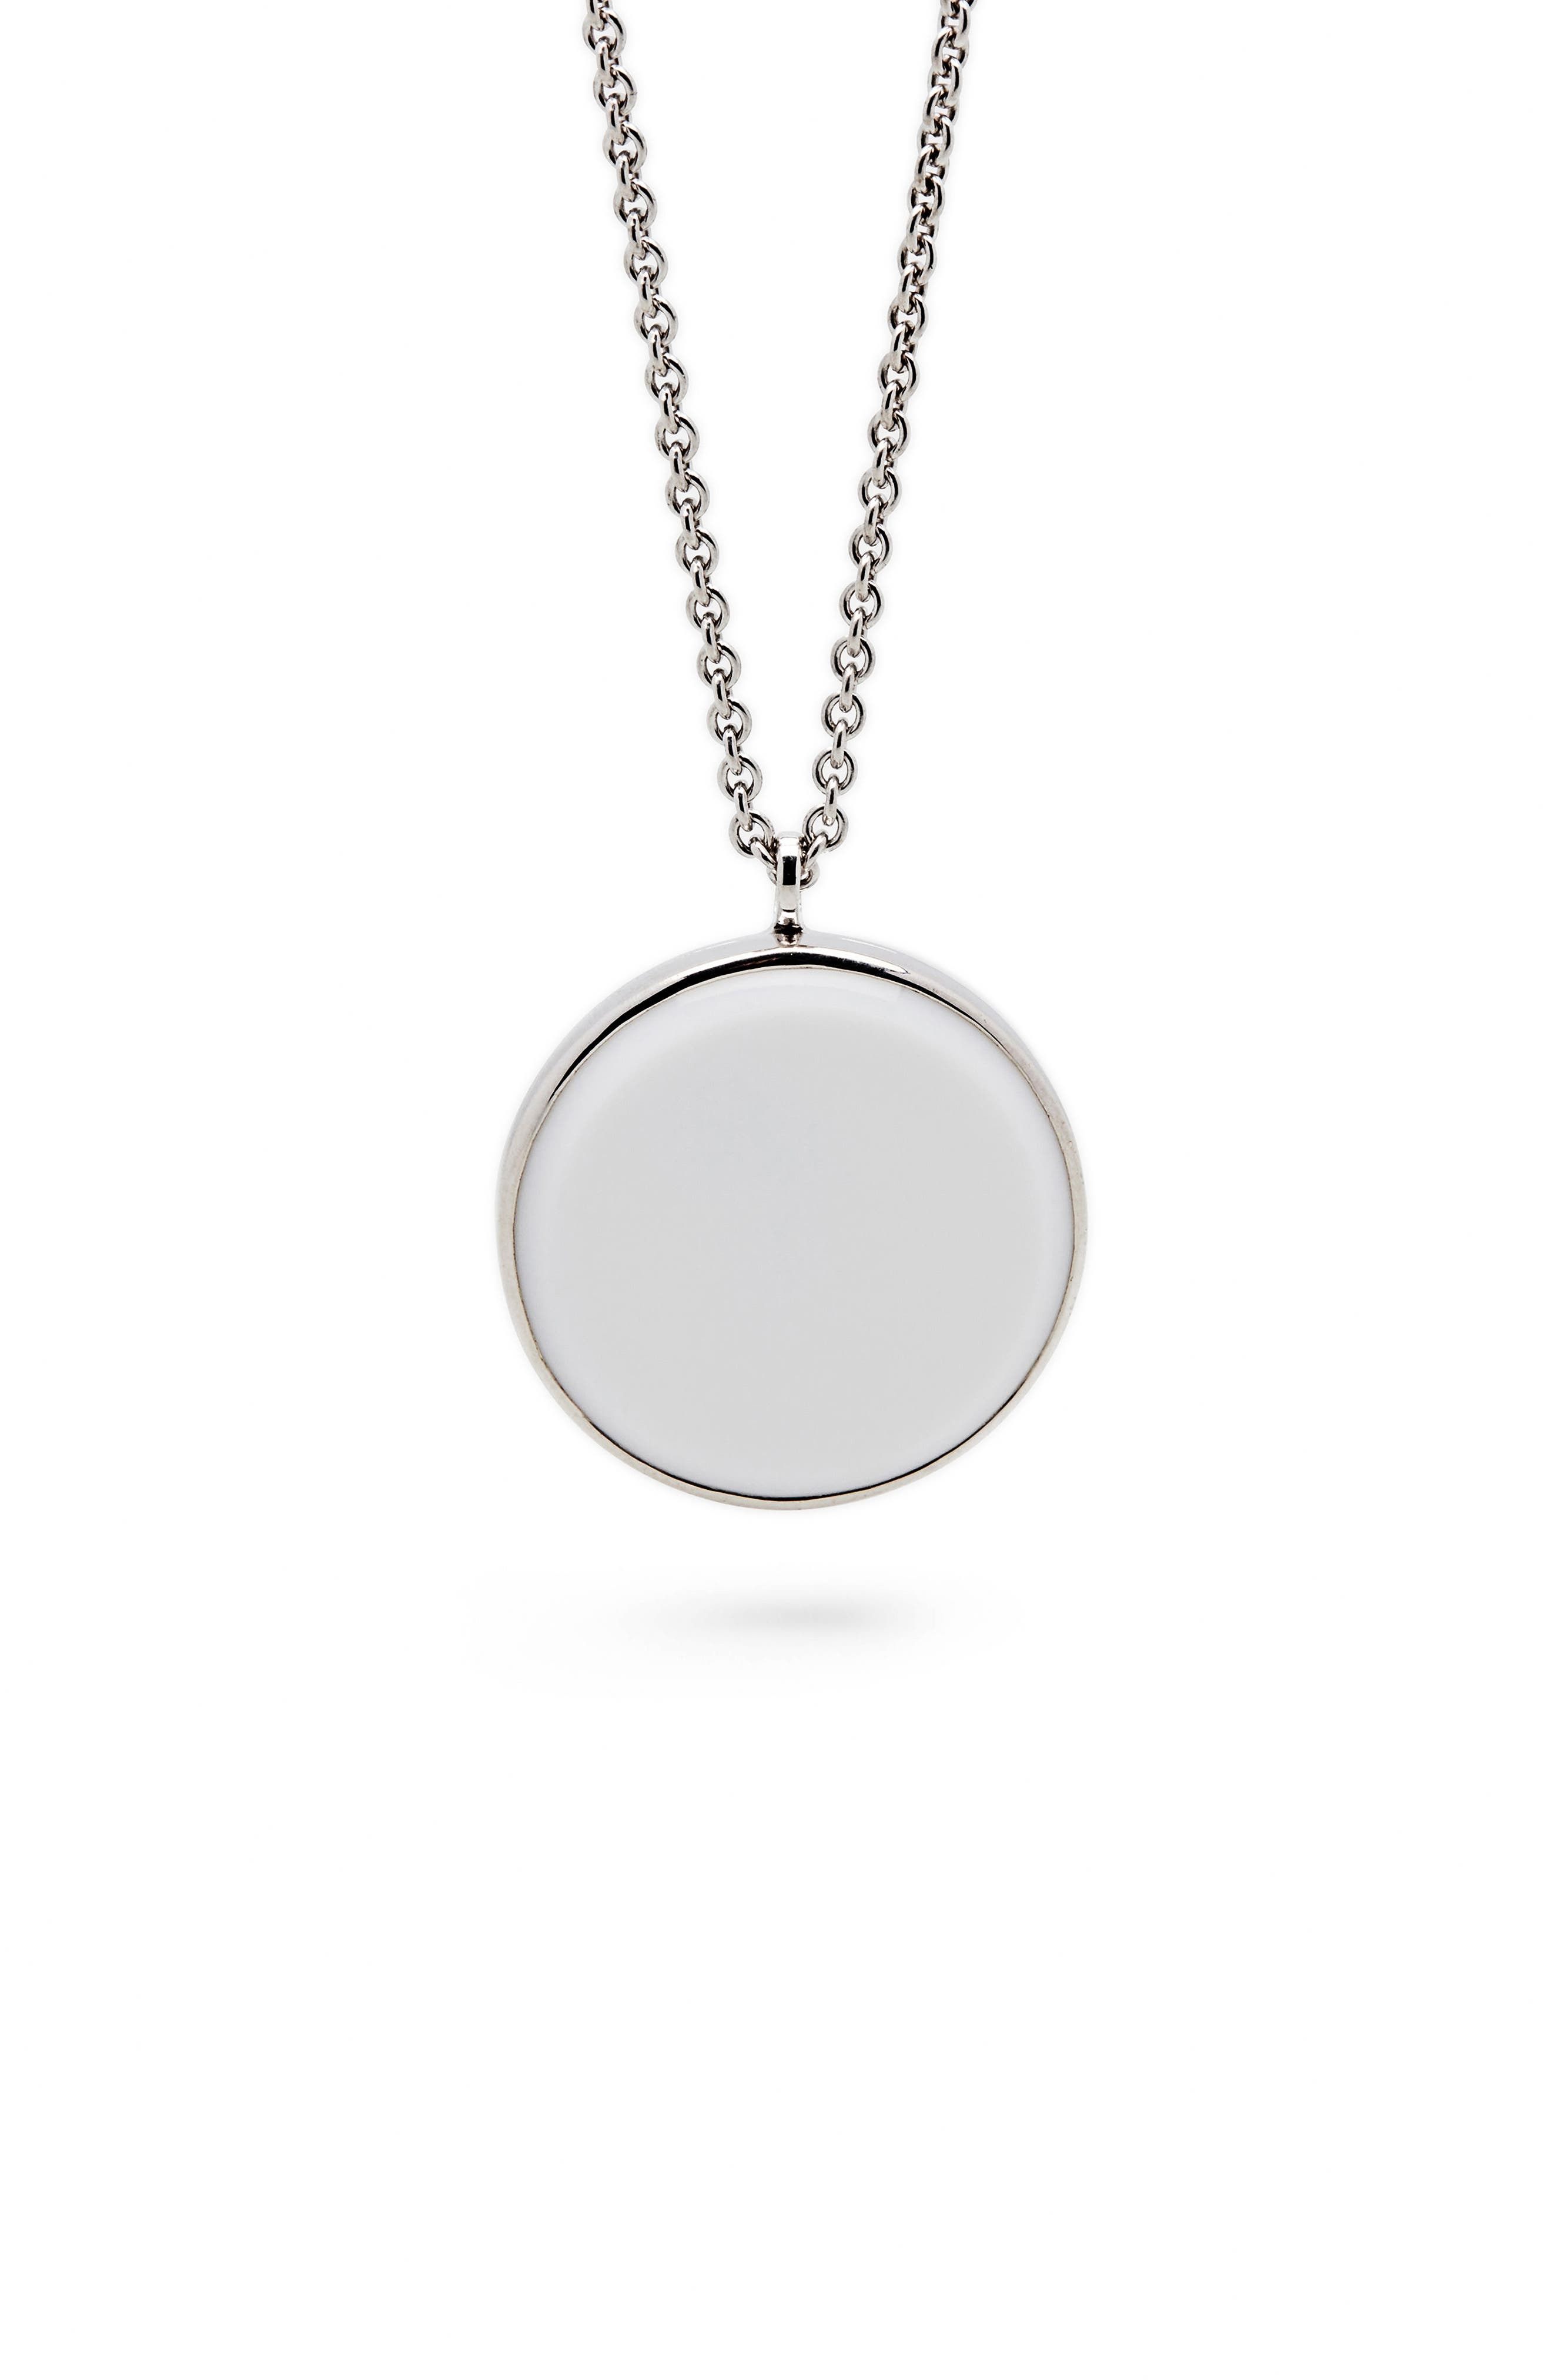 White Agate Medallion Necklace,                             Main thumbnail 1, color,                             925 STERLING SILVER